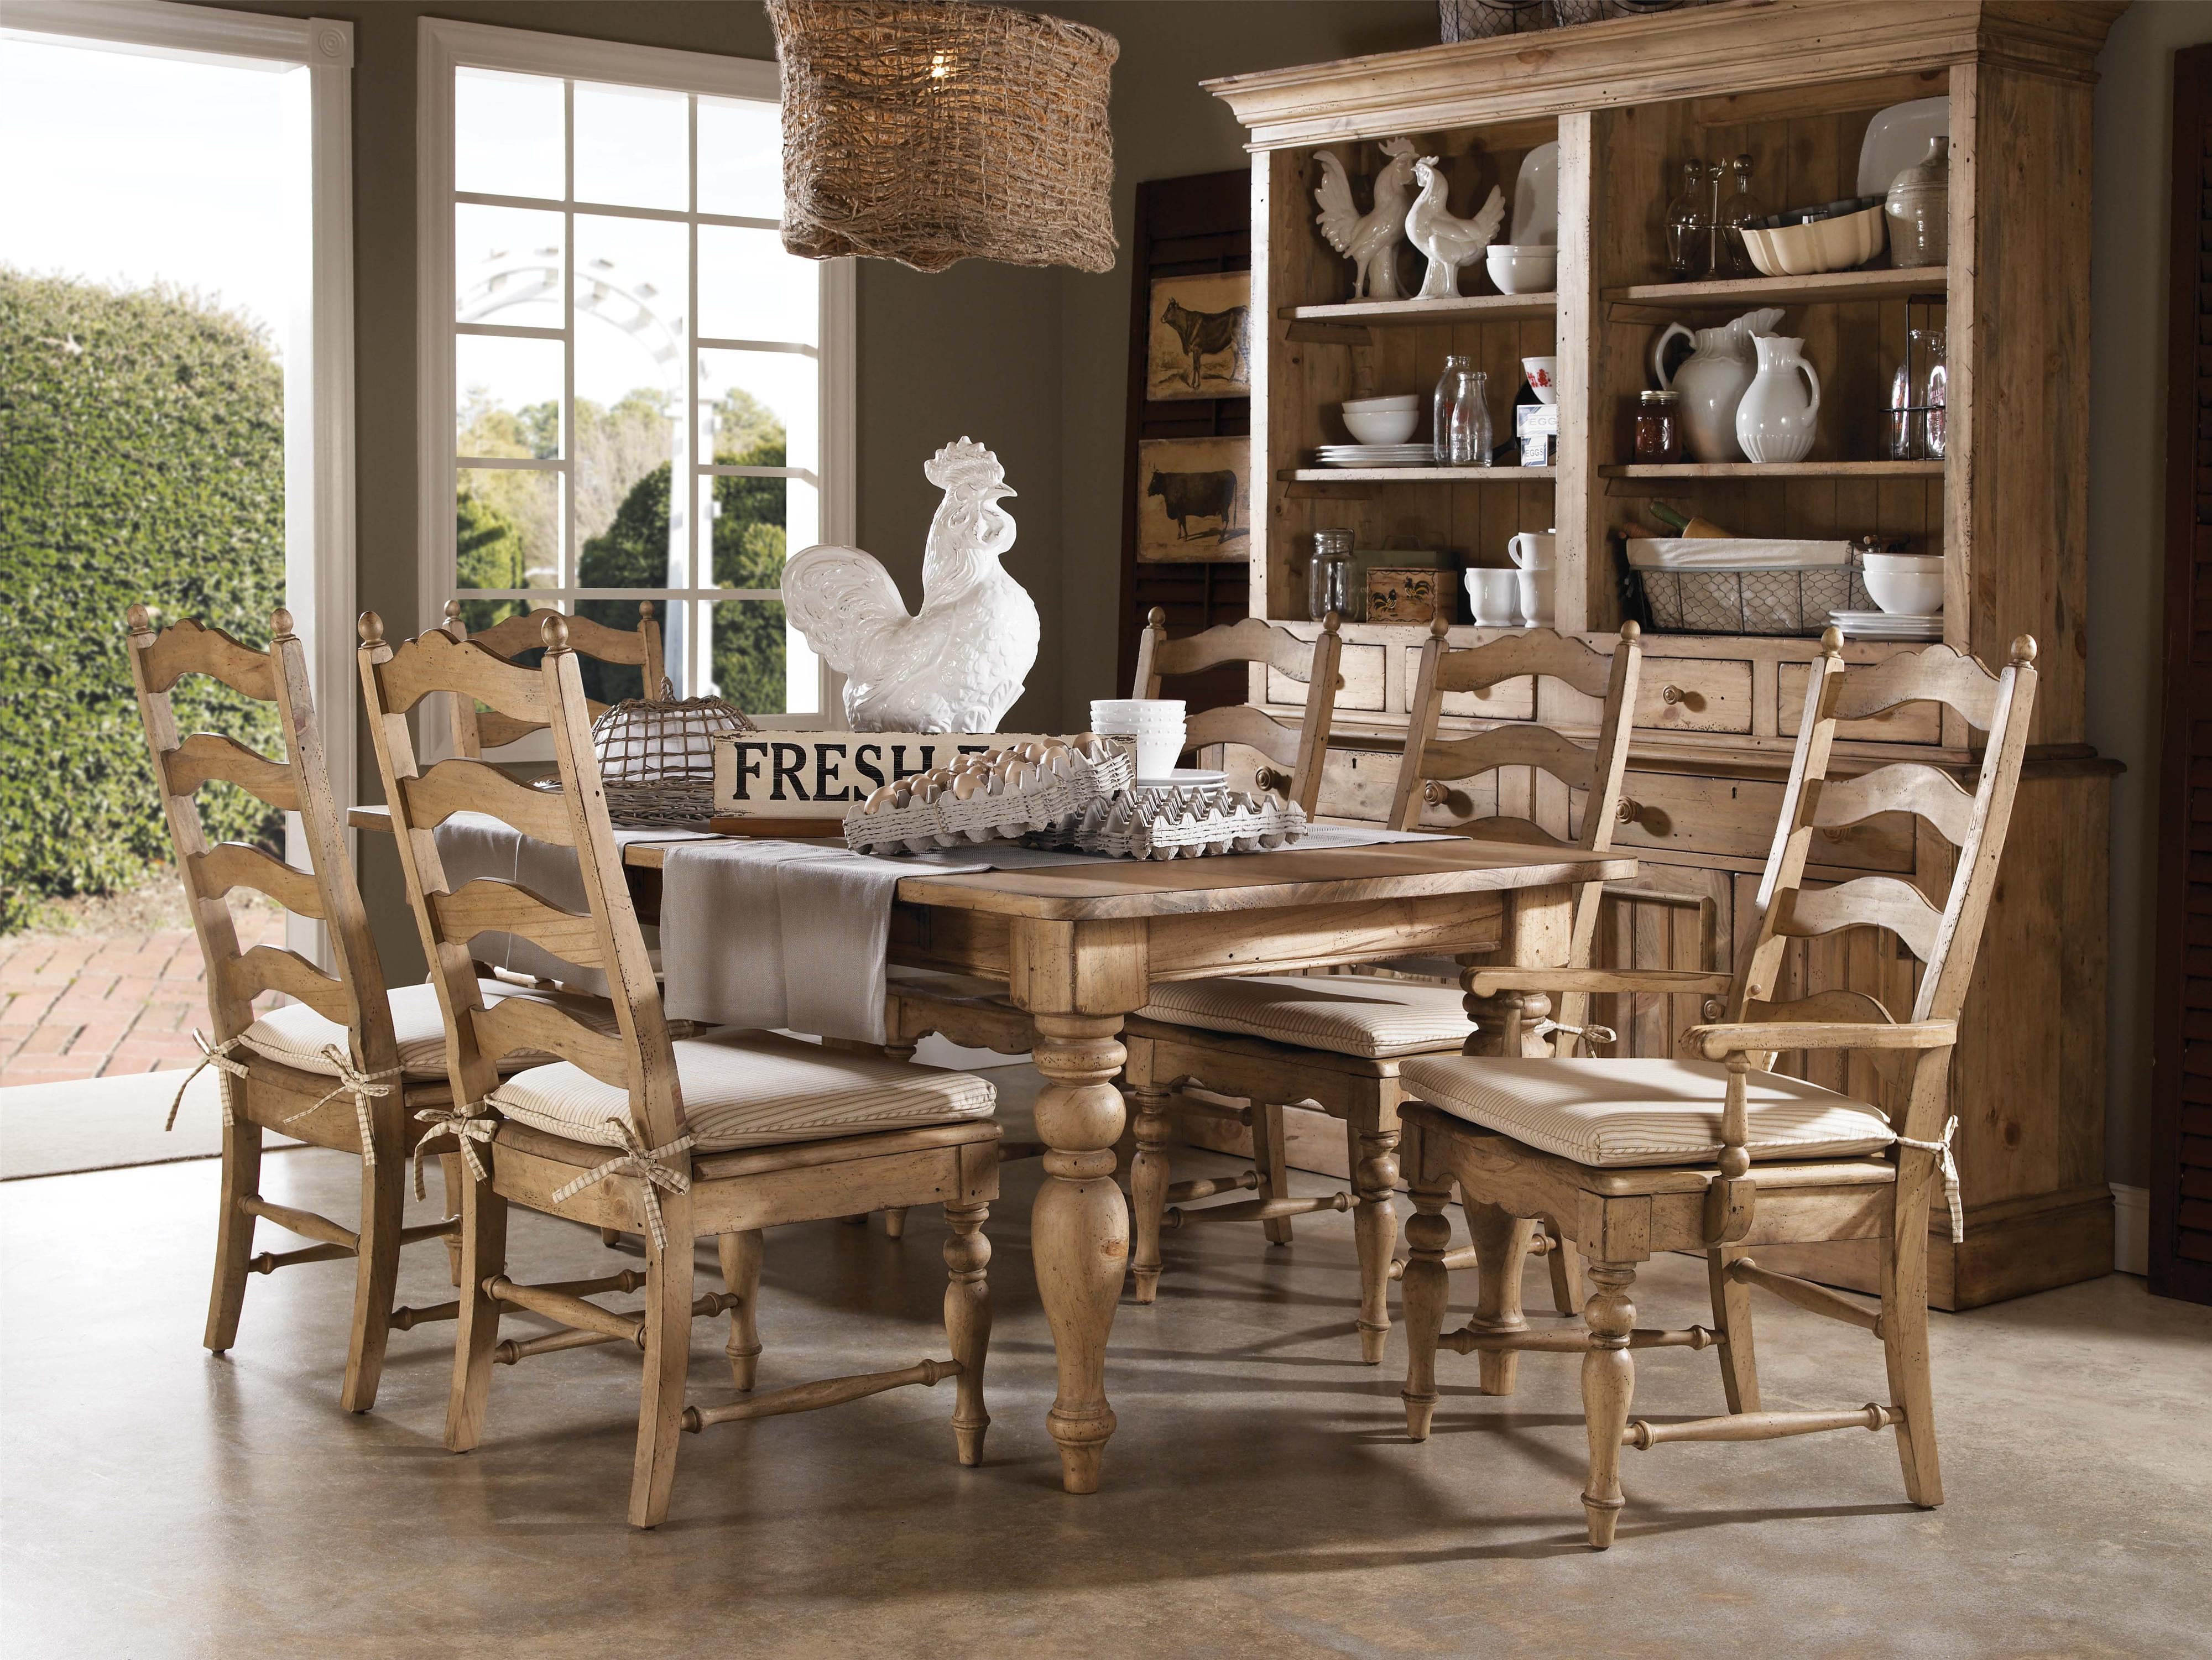 Kincaid Furniture Homecoming Seven Piece Dining Table & Chair Set - Item Number: 33-056+2x062+4x061